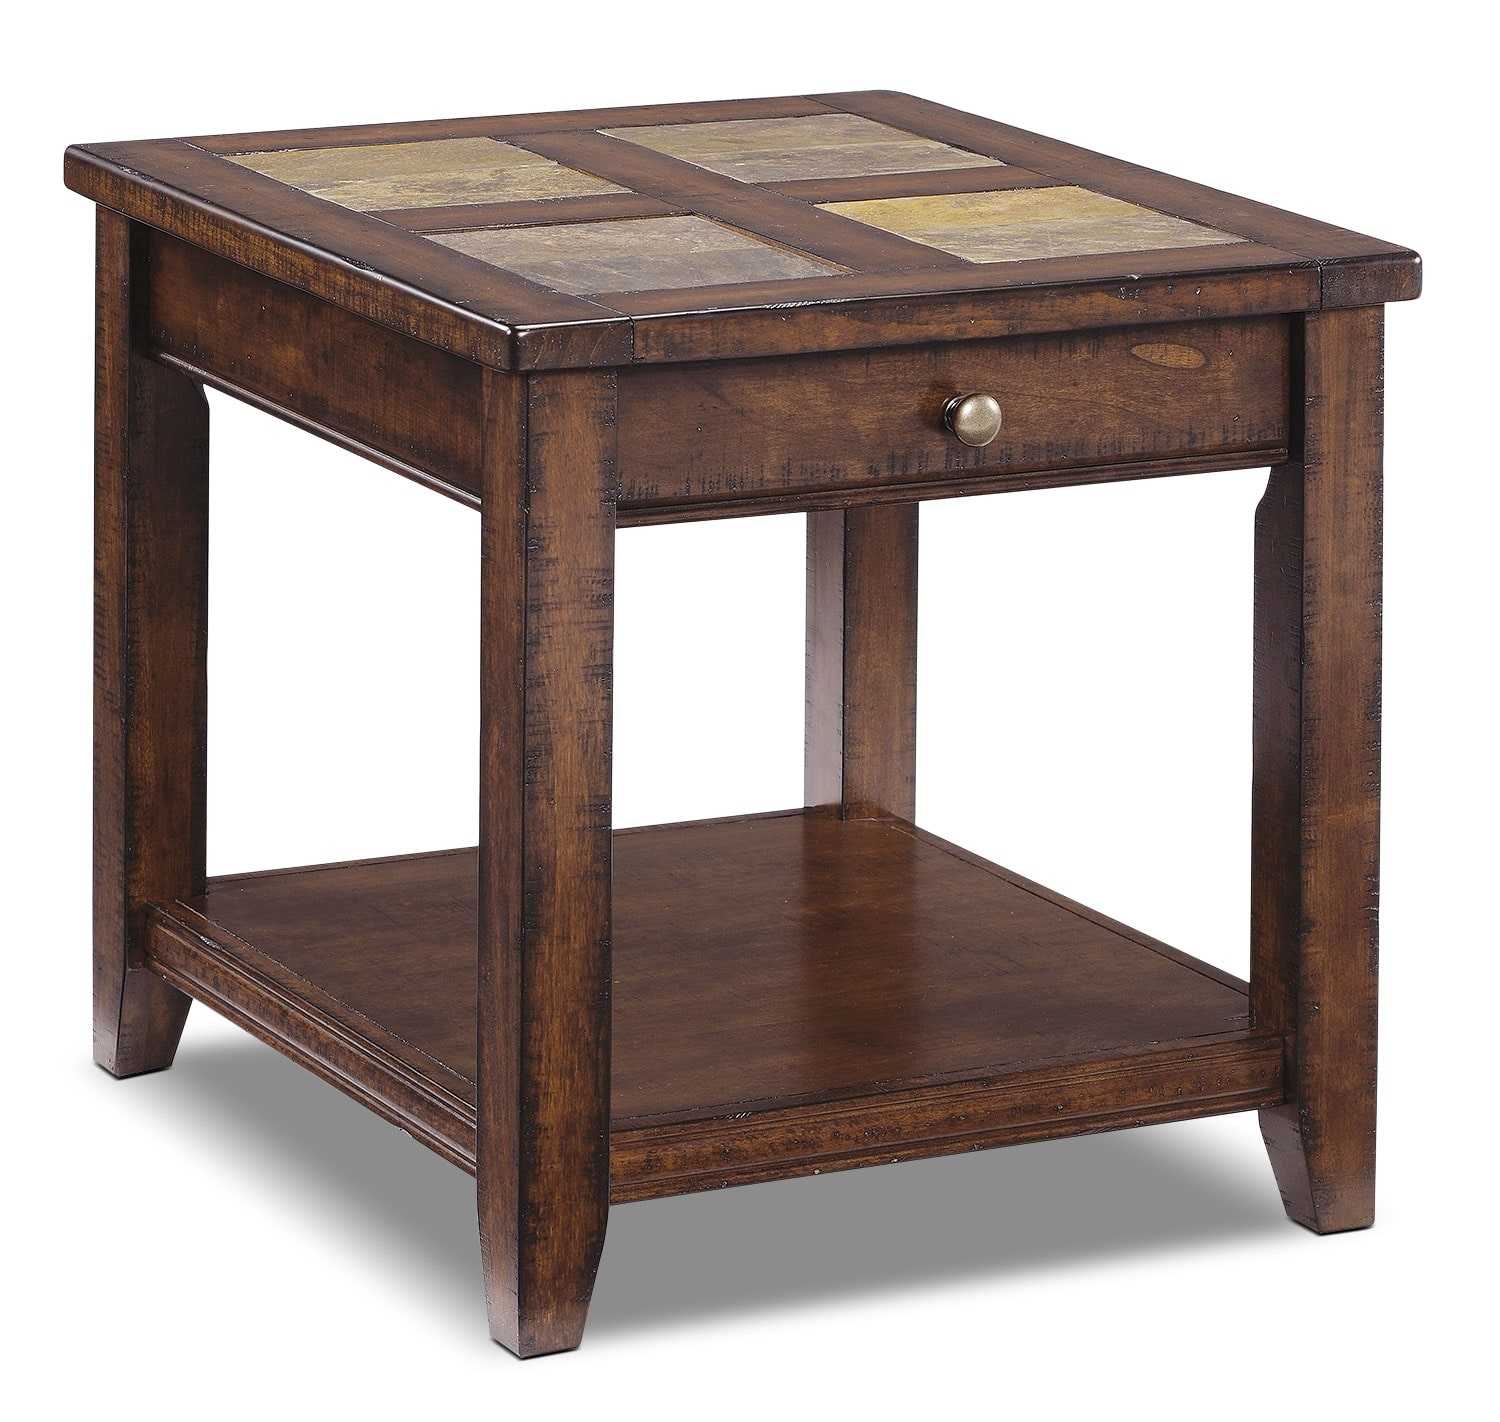 Online Only - Allister End Table - Cinnamon